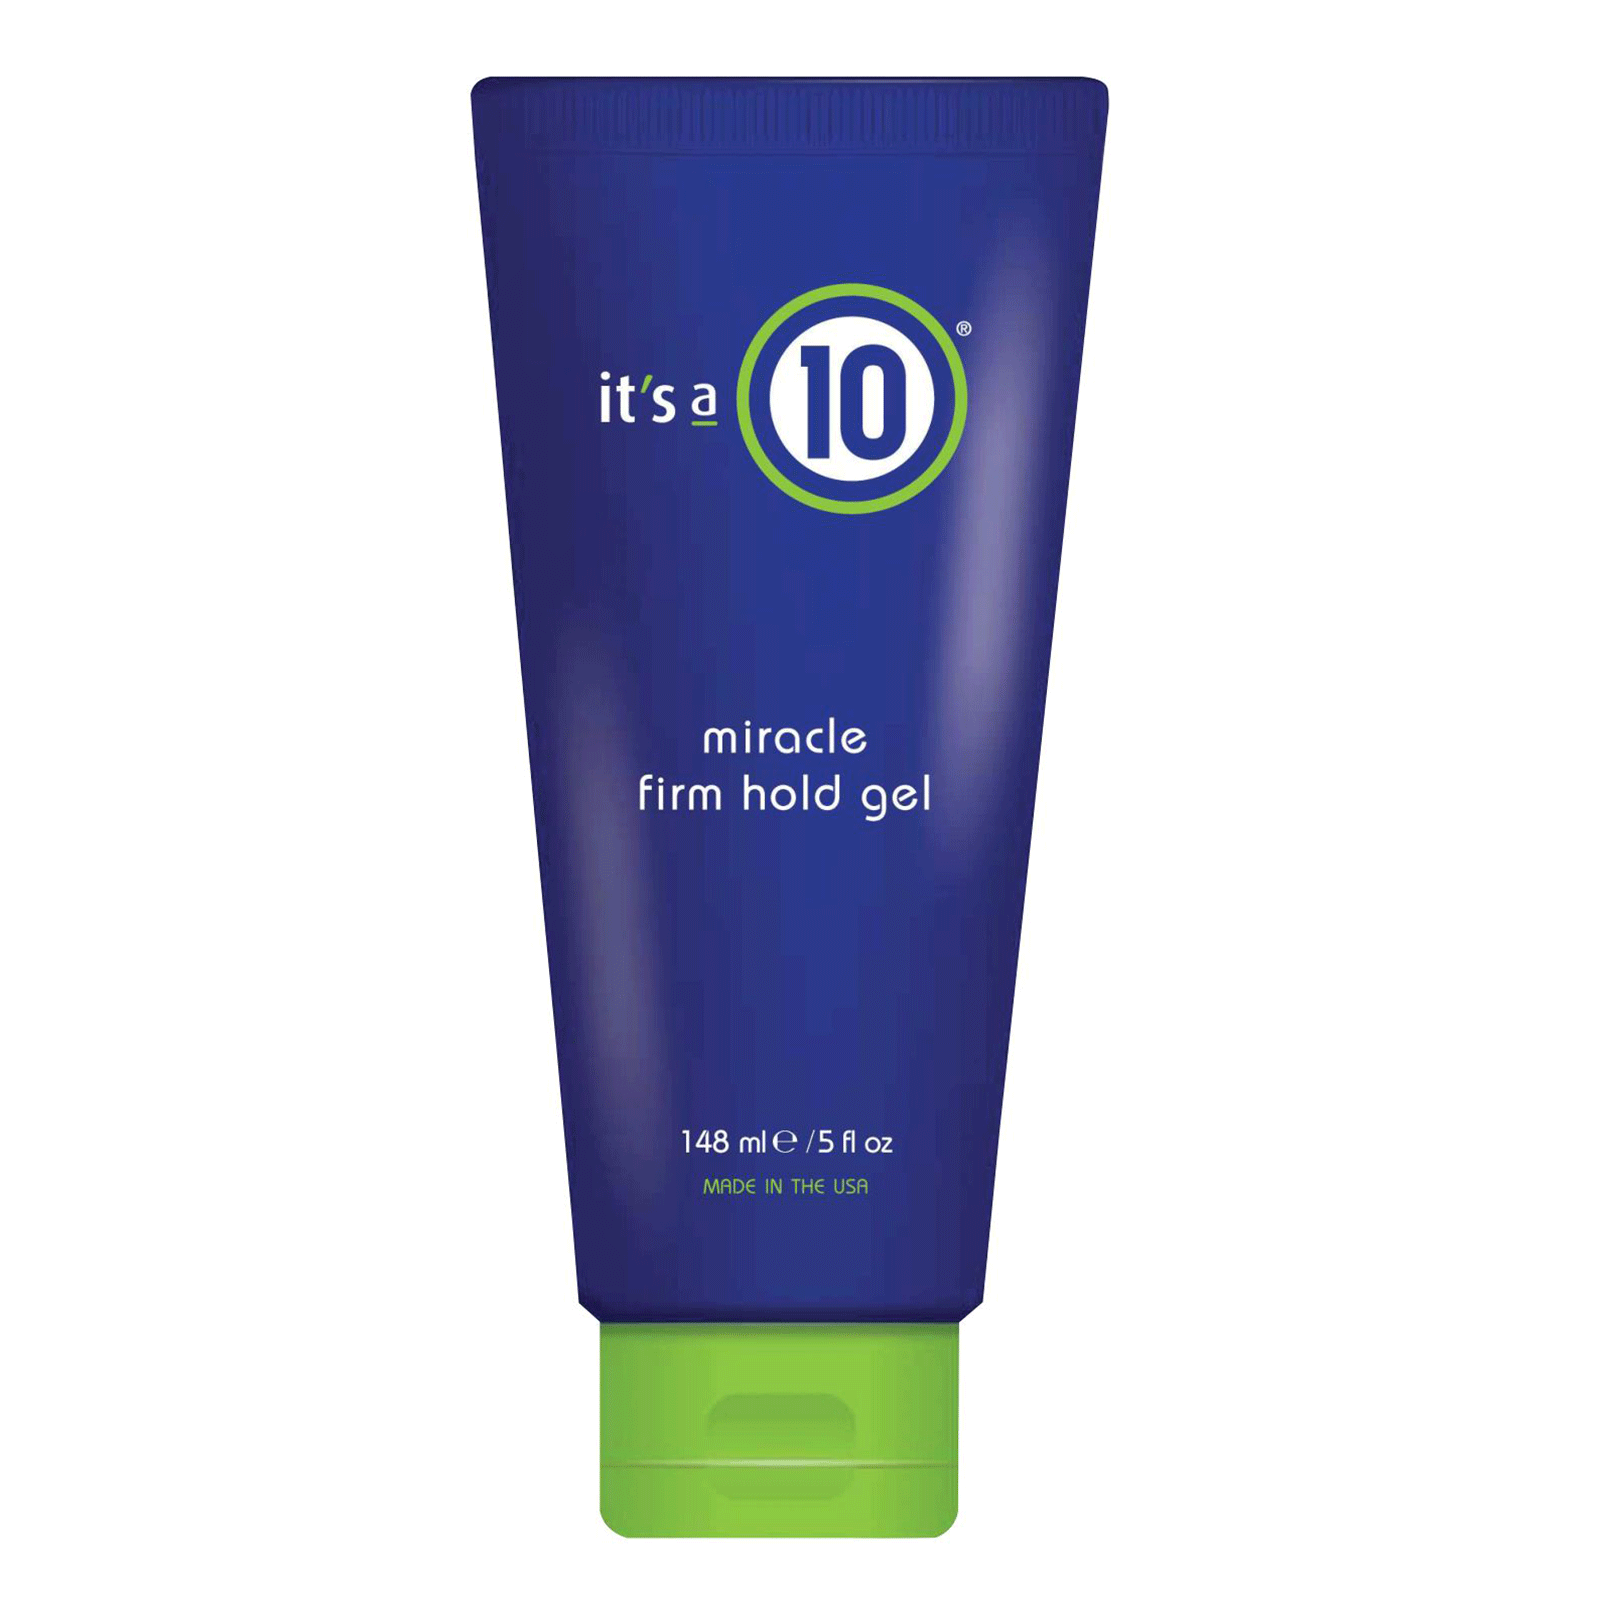 Miracle Firm Hold Gel